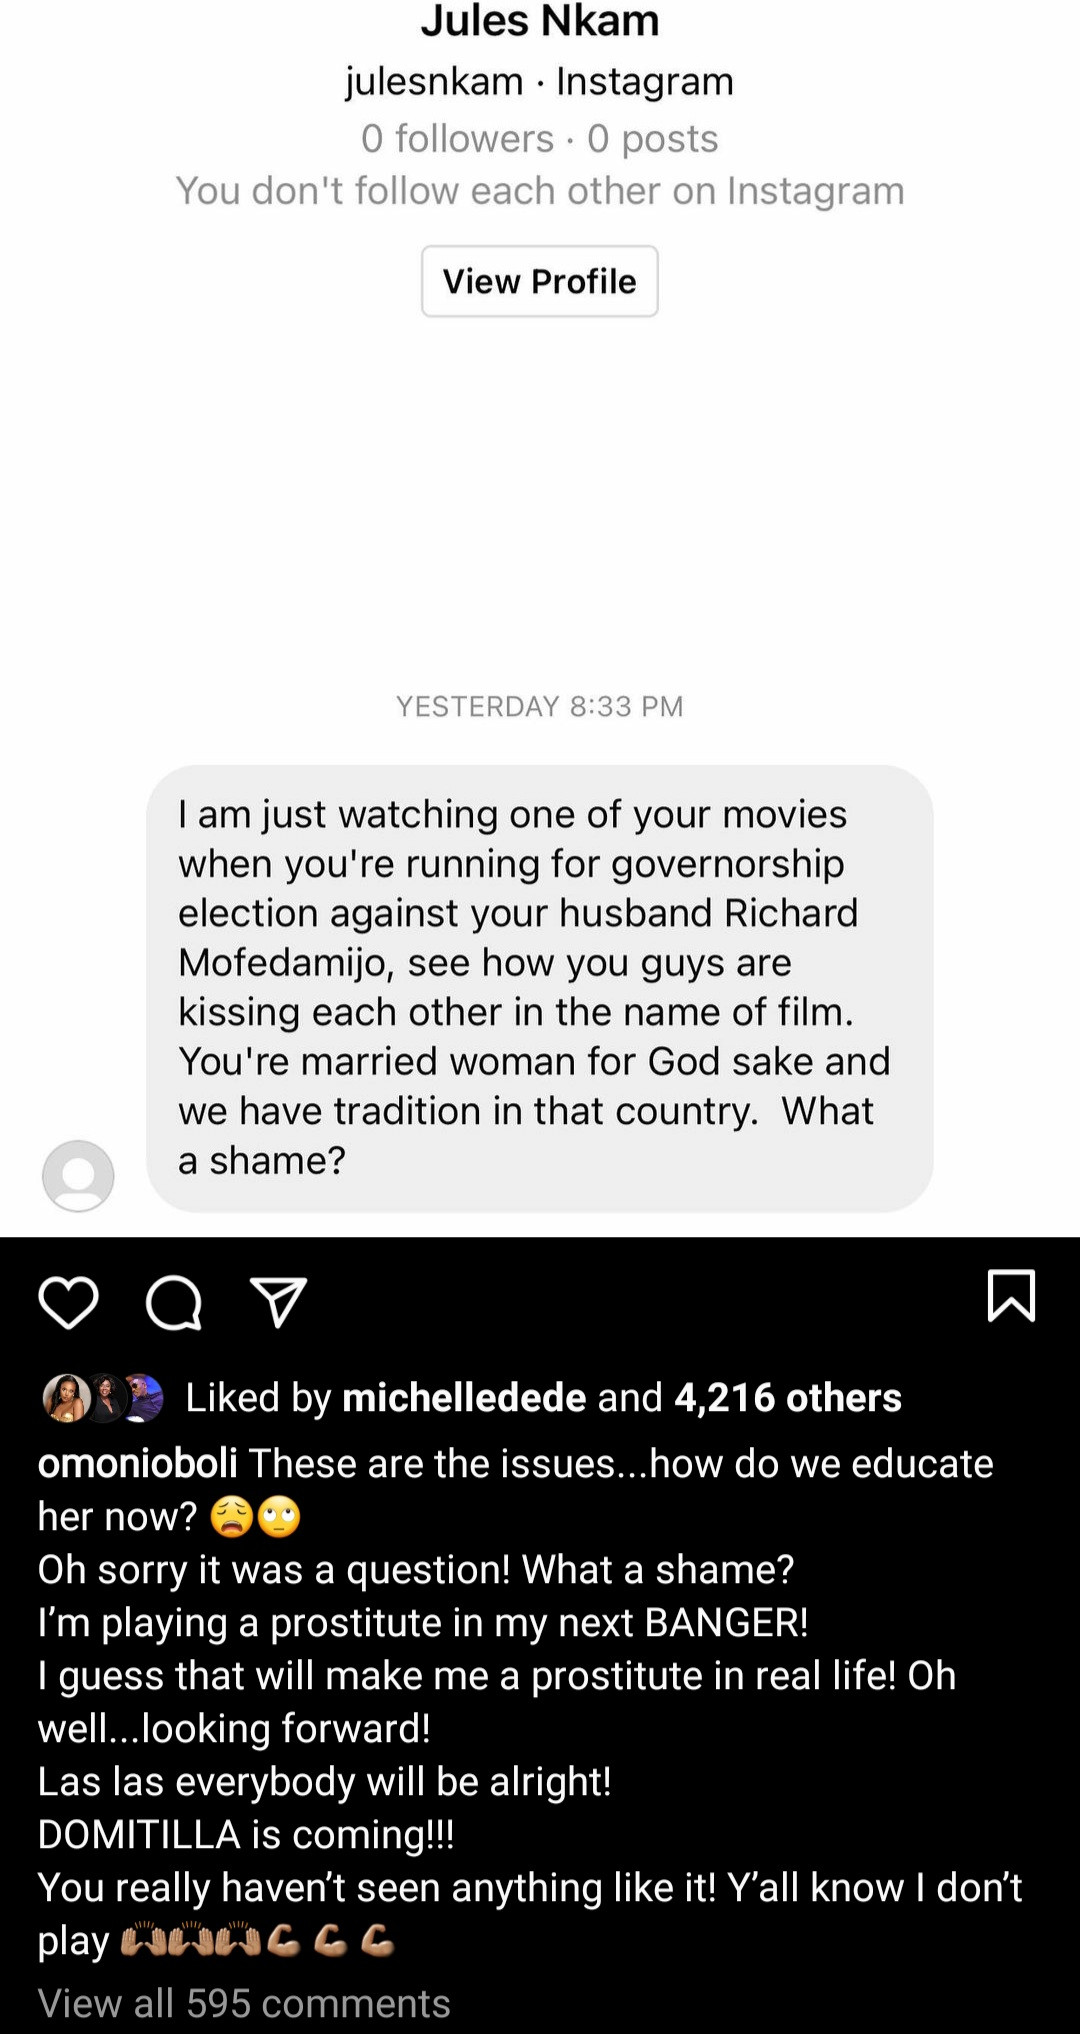 Omoni Oboli Responds To Critic Calling Her Out For Kissing RMD Passionately On TV Despite Being Married - Vantage News Nigeria